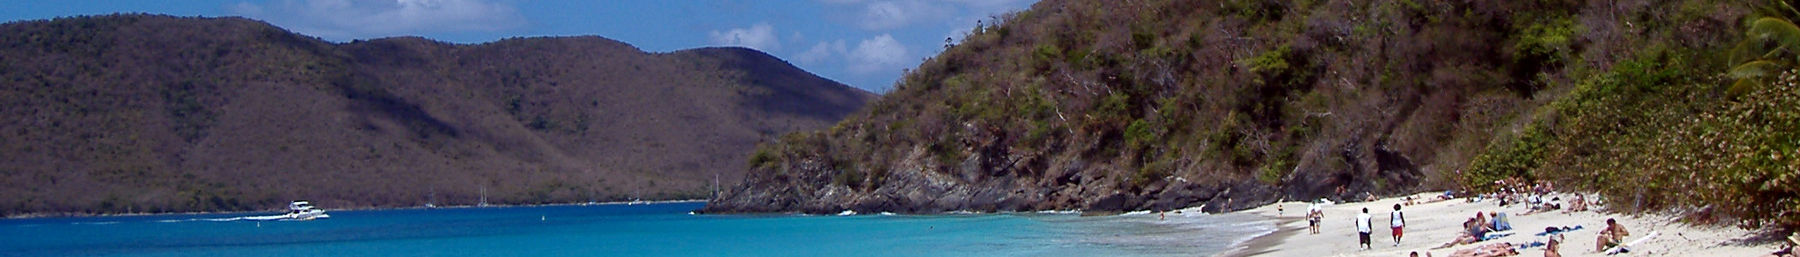 US Virgin Islands banner Beach and coastline.jpg